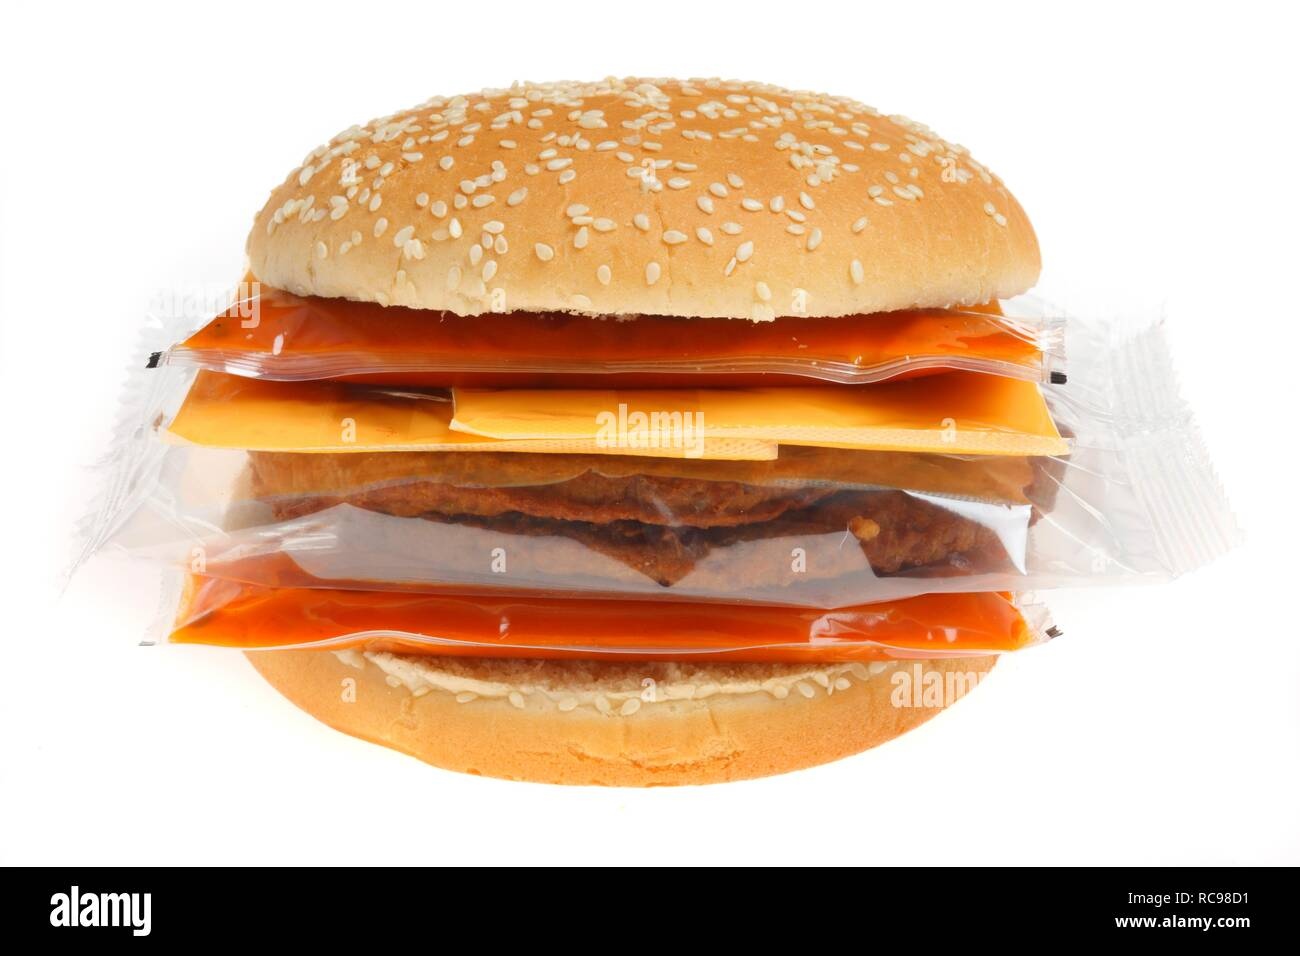 Fast food, individually packaged ingredients from the refrigerator to make your own hamburger with cheese - Stock Image